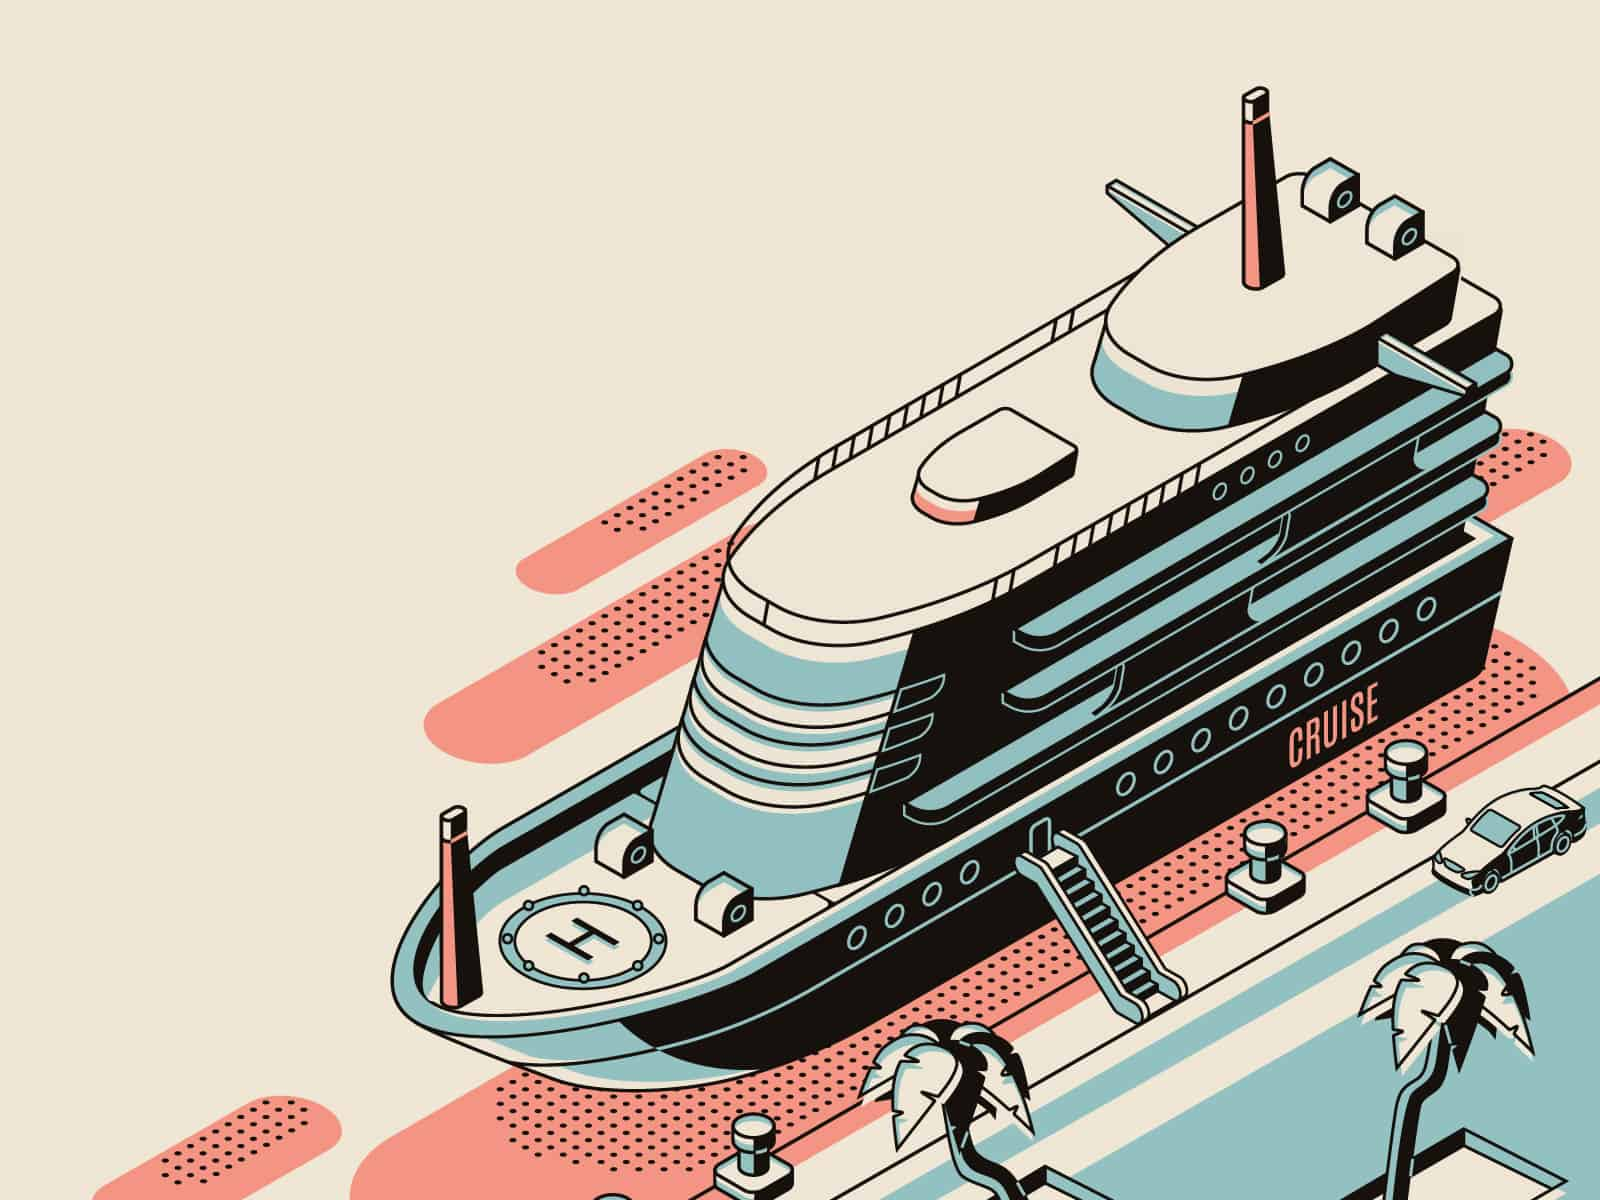 Cruise isometric design